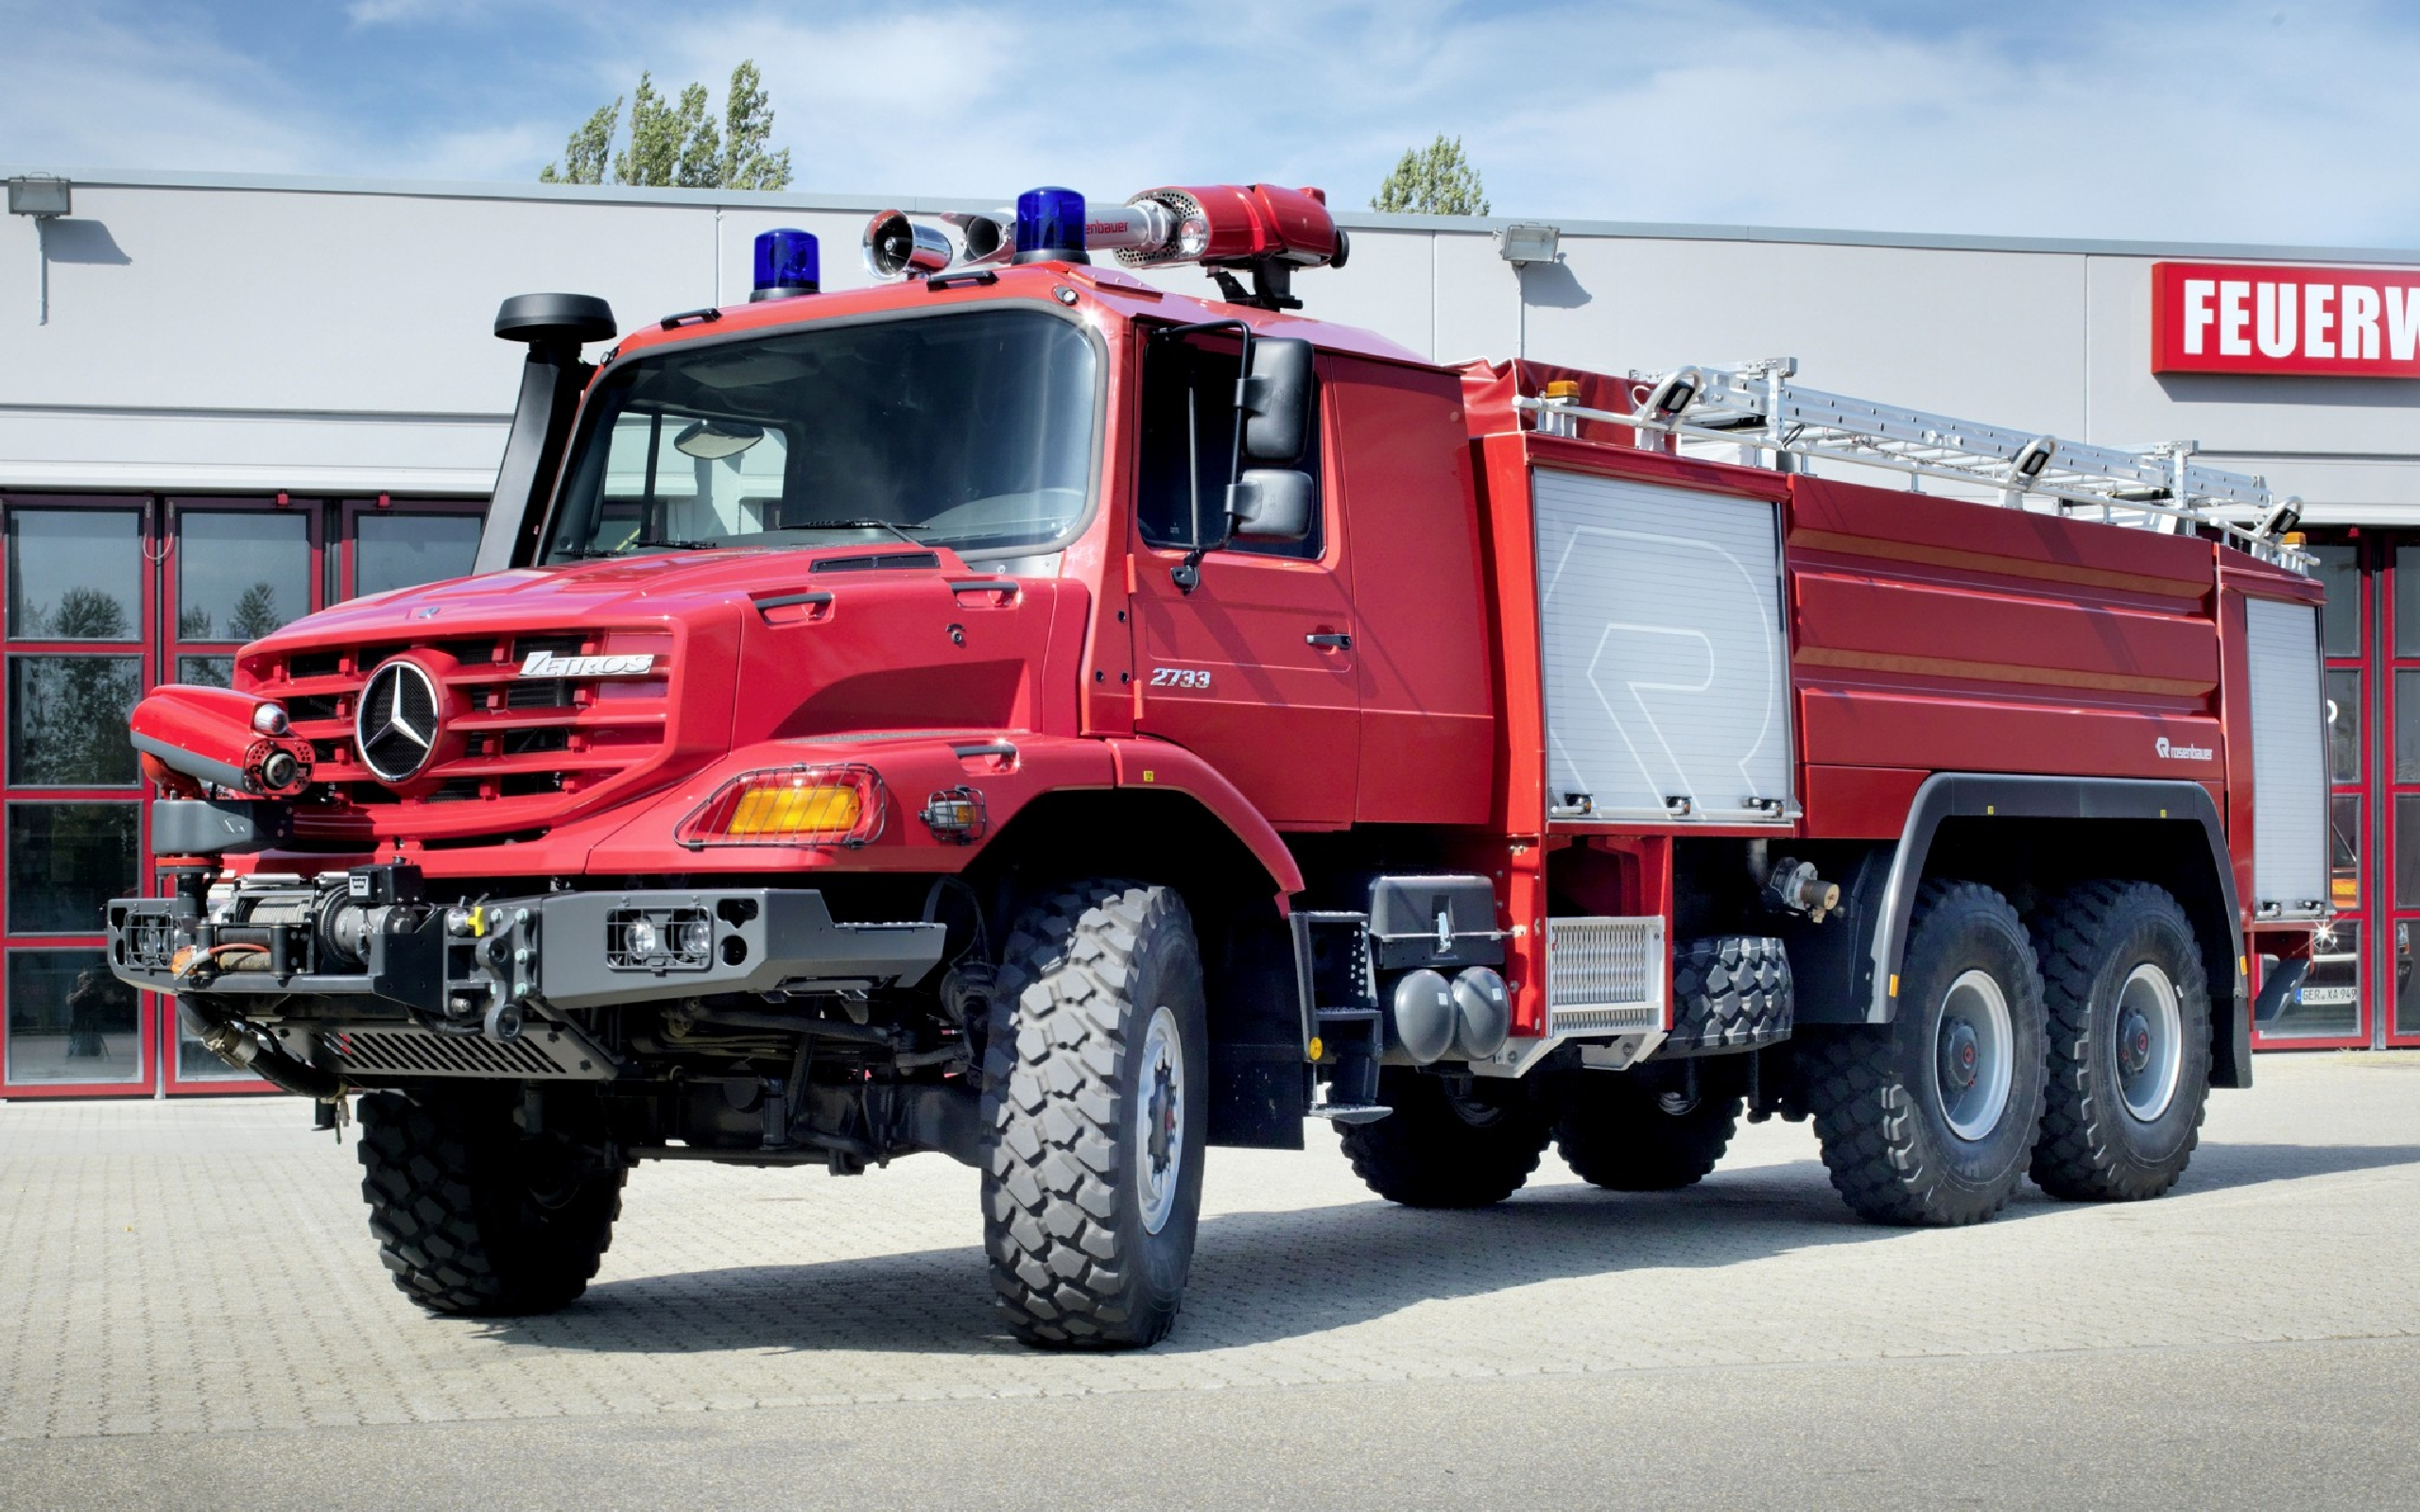 Fire Truck Wallpaper Pictures 2560x1600